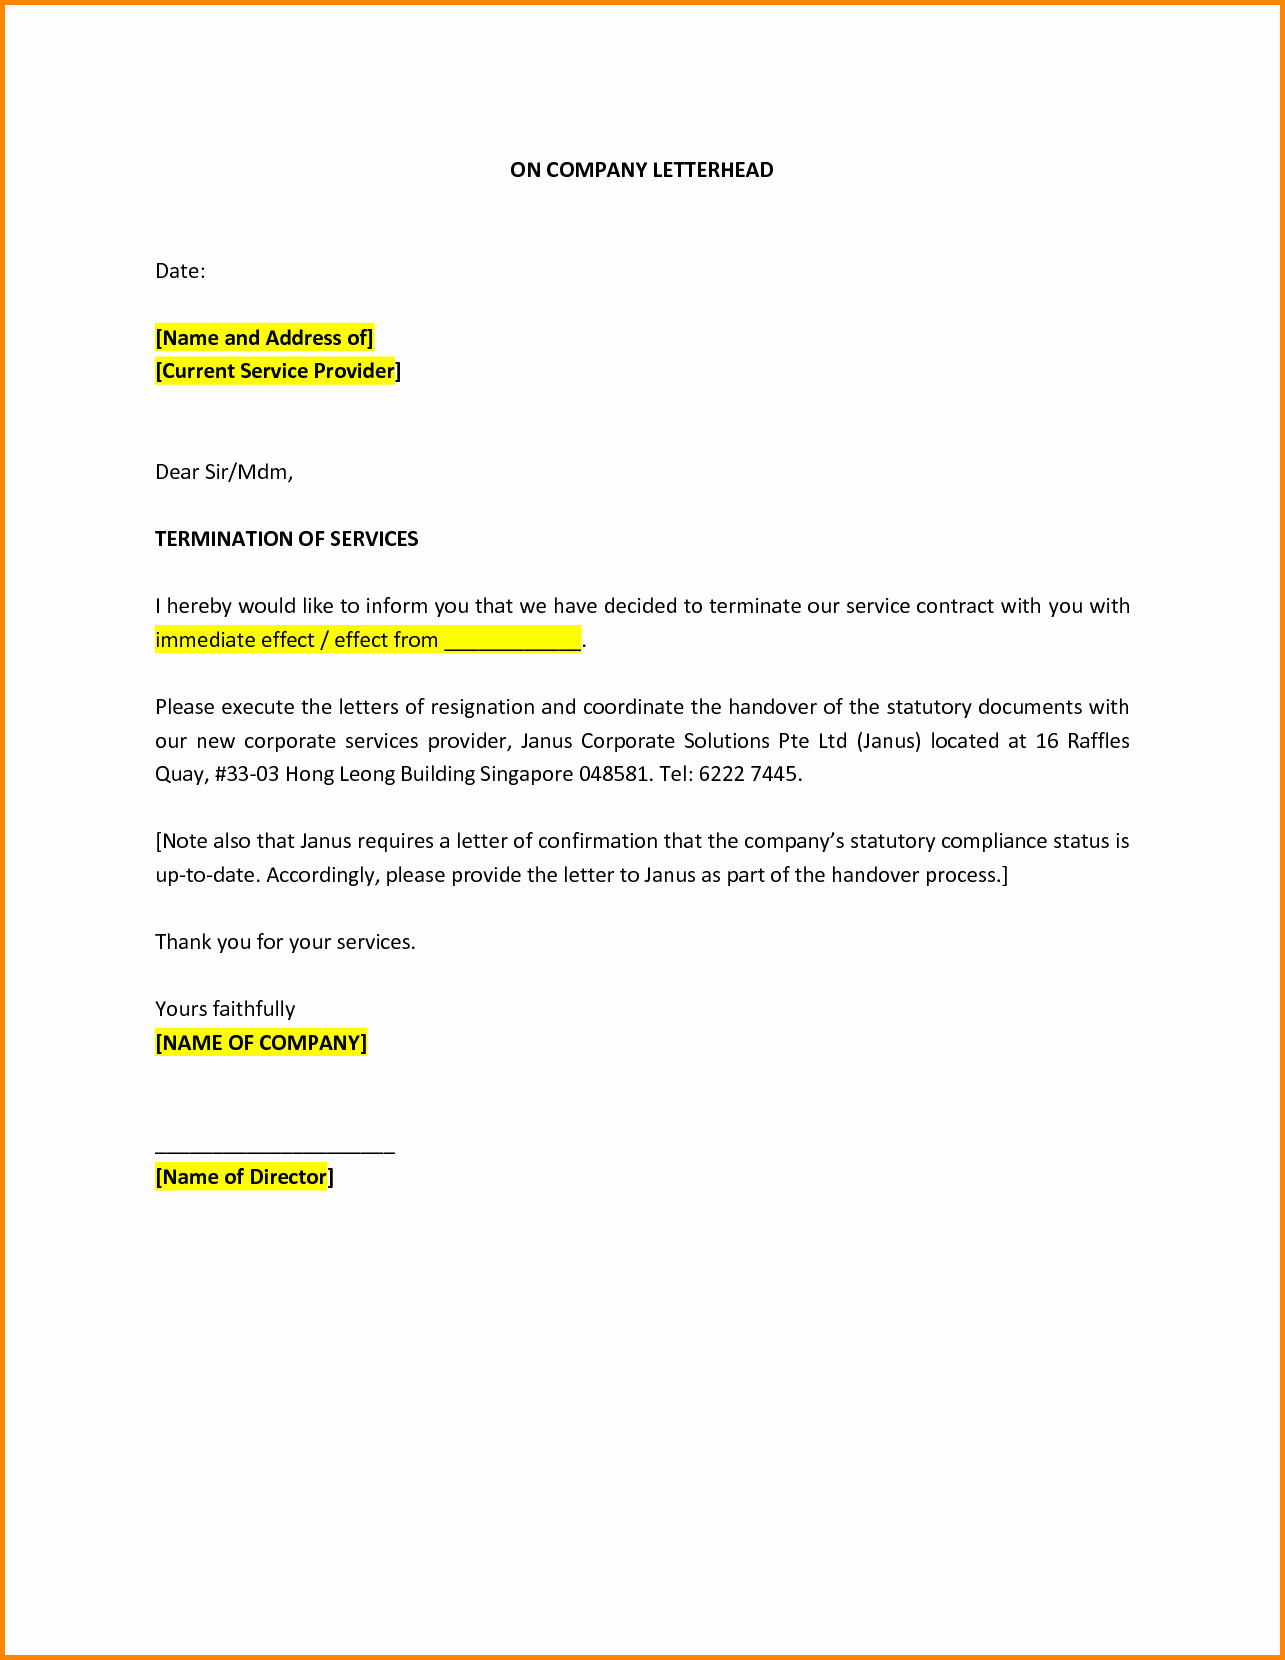 Termination Letter Sample Free Fresh Letter to Terminate Services